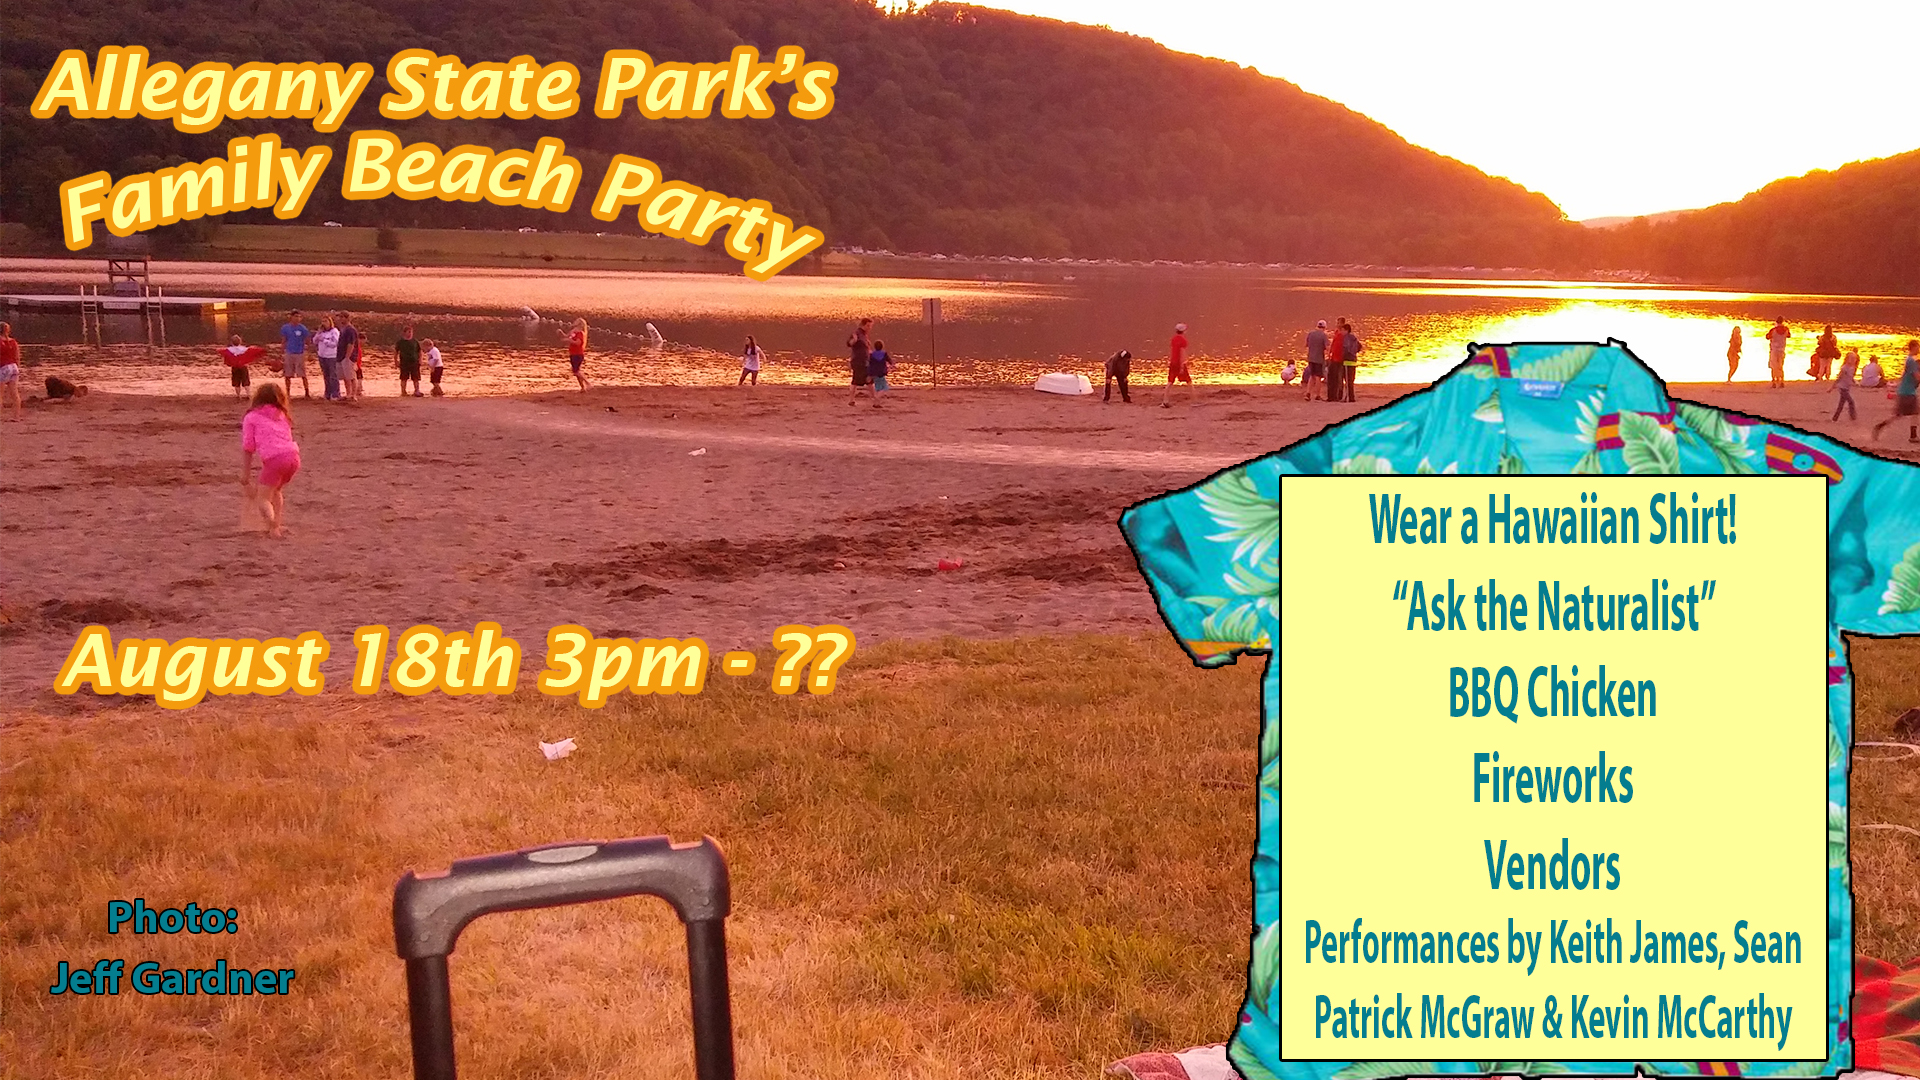 Allegany State Park Family Beach Party 2017